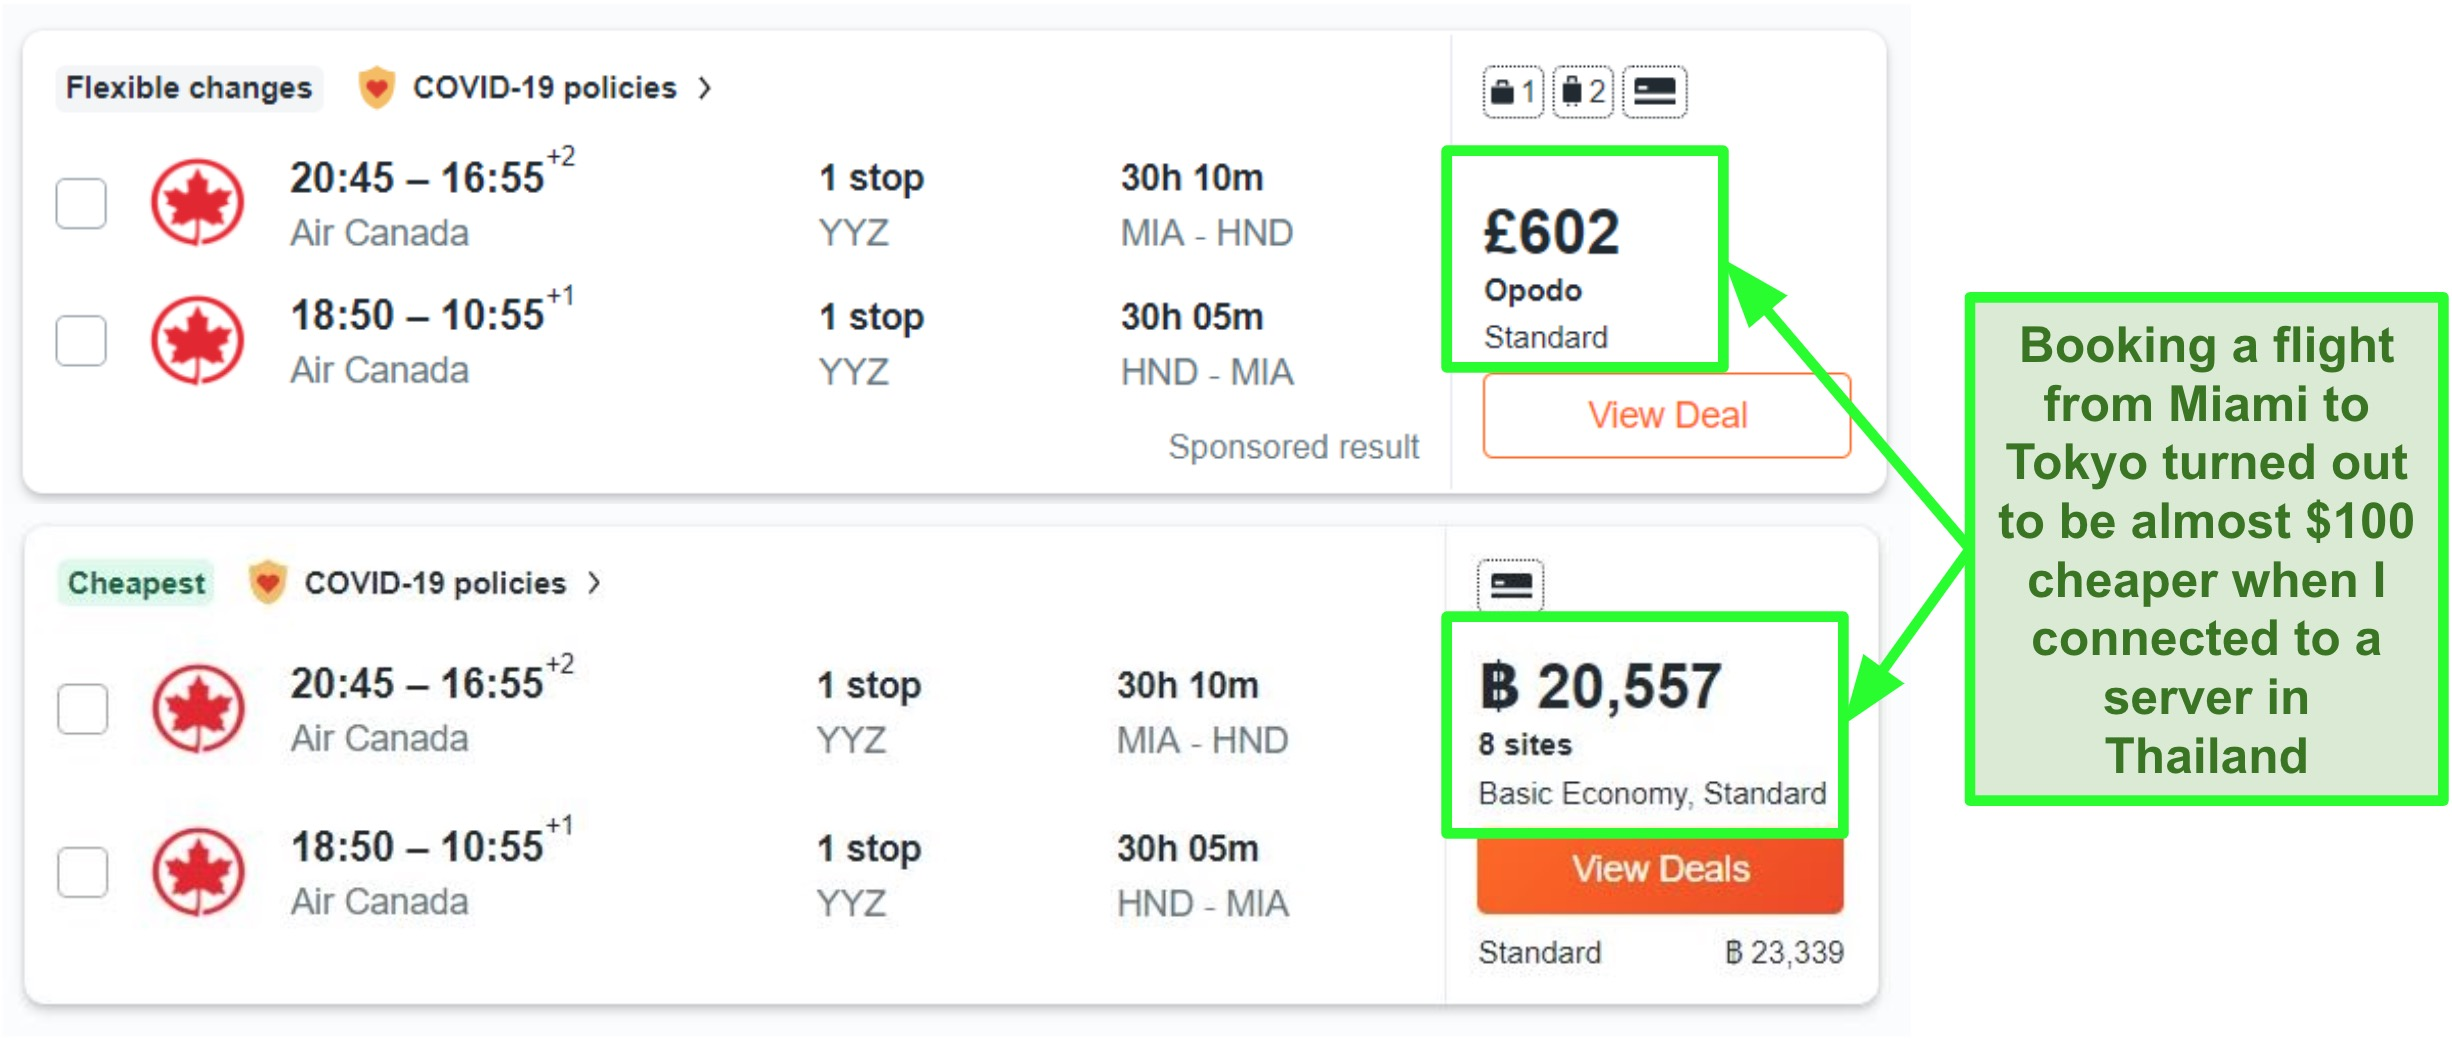 Price comparison of Miami-Tokyo route using servers in the UK and Thailand